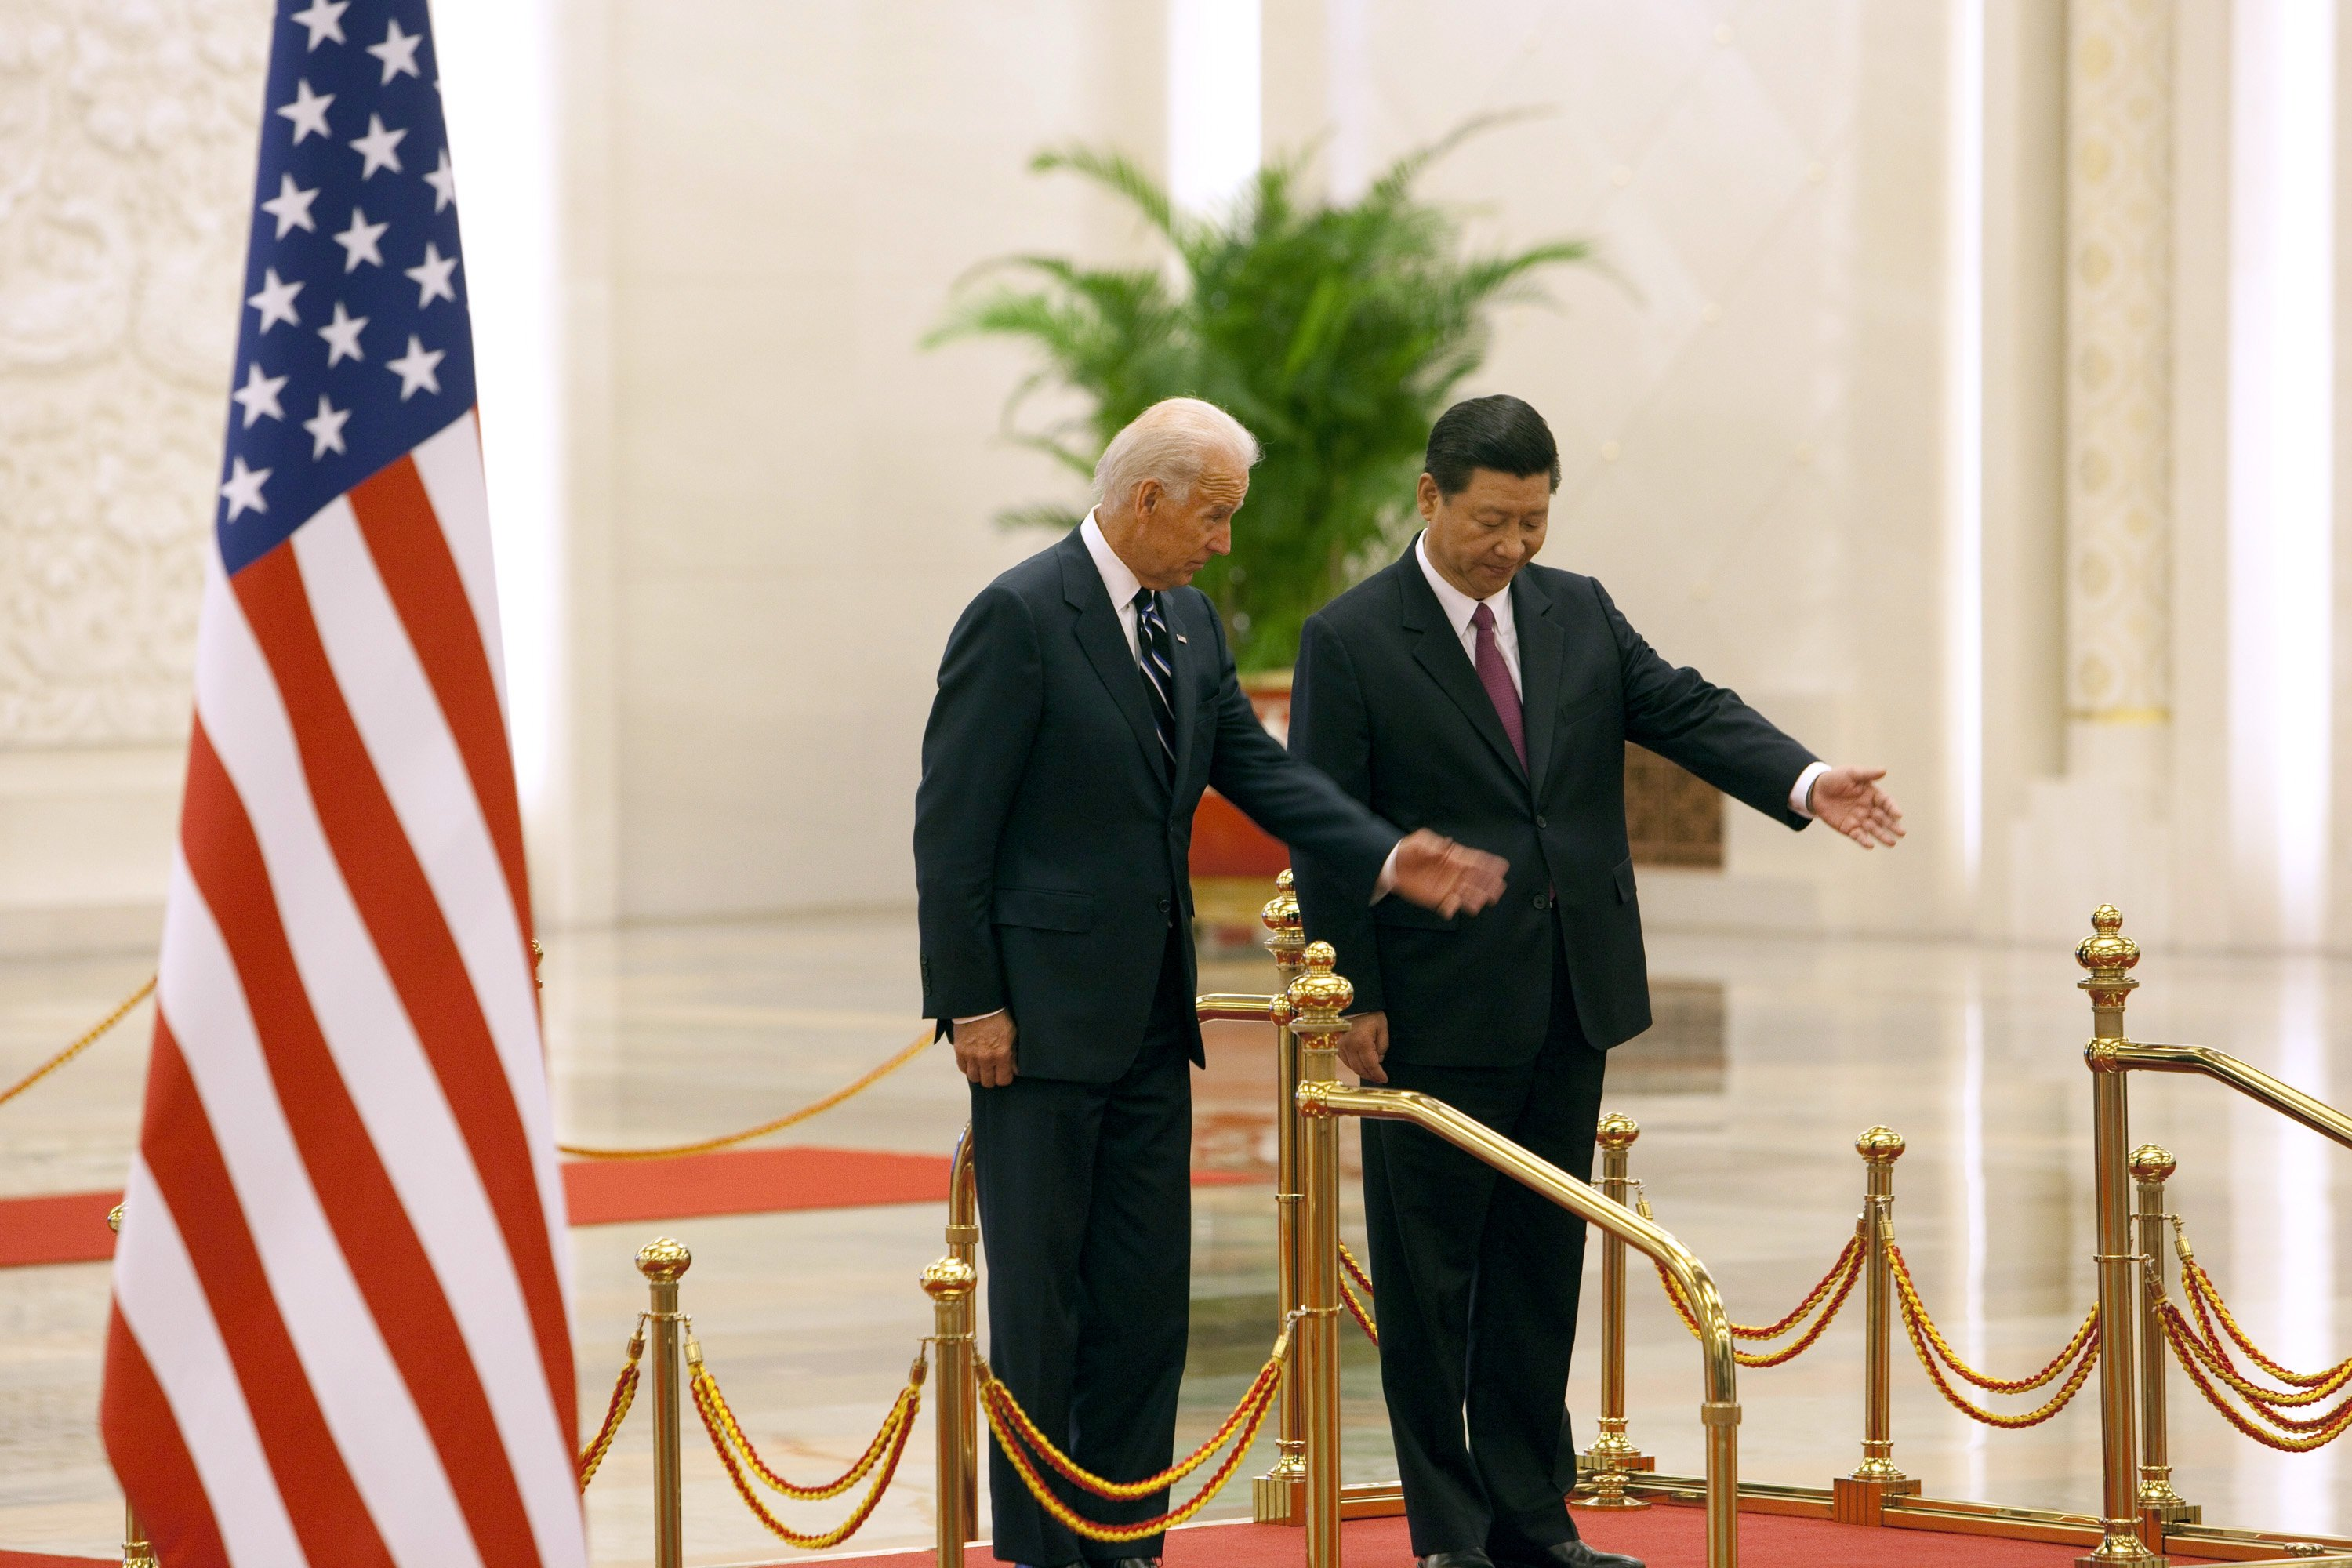 China's then Vice President Xi Jinping (R) attends a welcoming ceremony with then U.S. Vice President Joe Biden at the Great Hall of the People in Beijing, China, Aug. 18, 2011. (Photo by Getty Images)